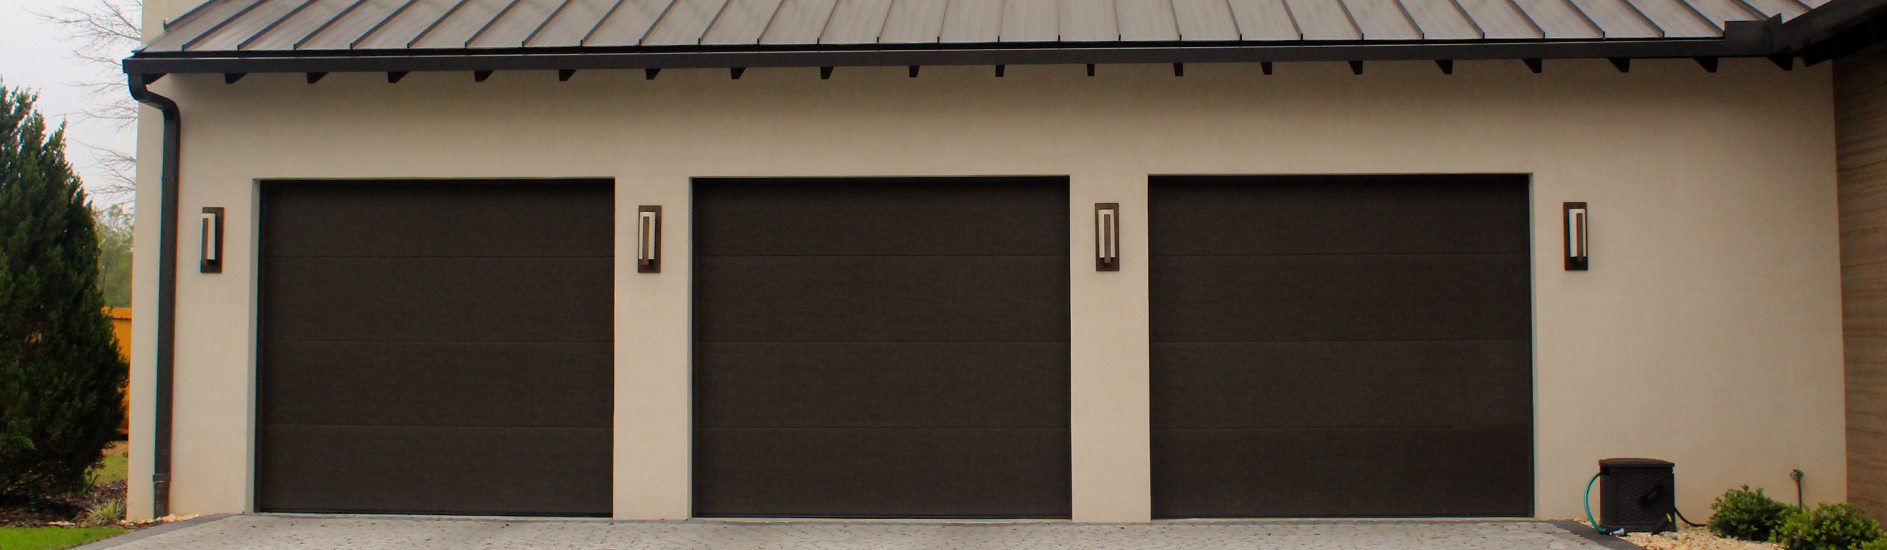 Classic steel garage doors 8300 8500 classic steel 8300 8500 contemporary panel brown rubansaba